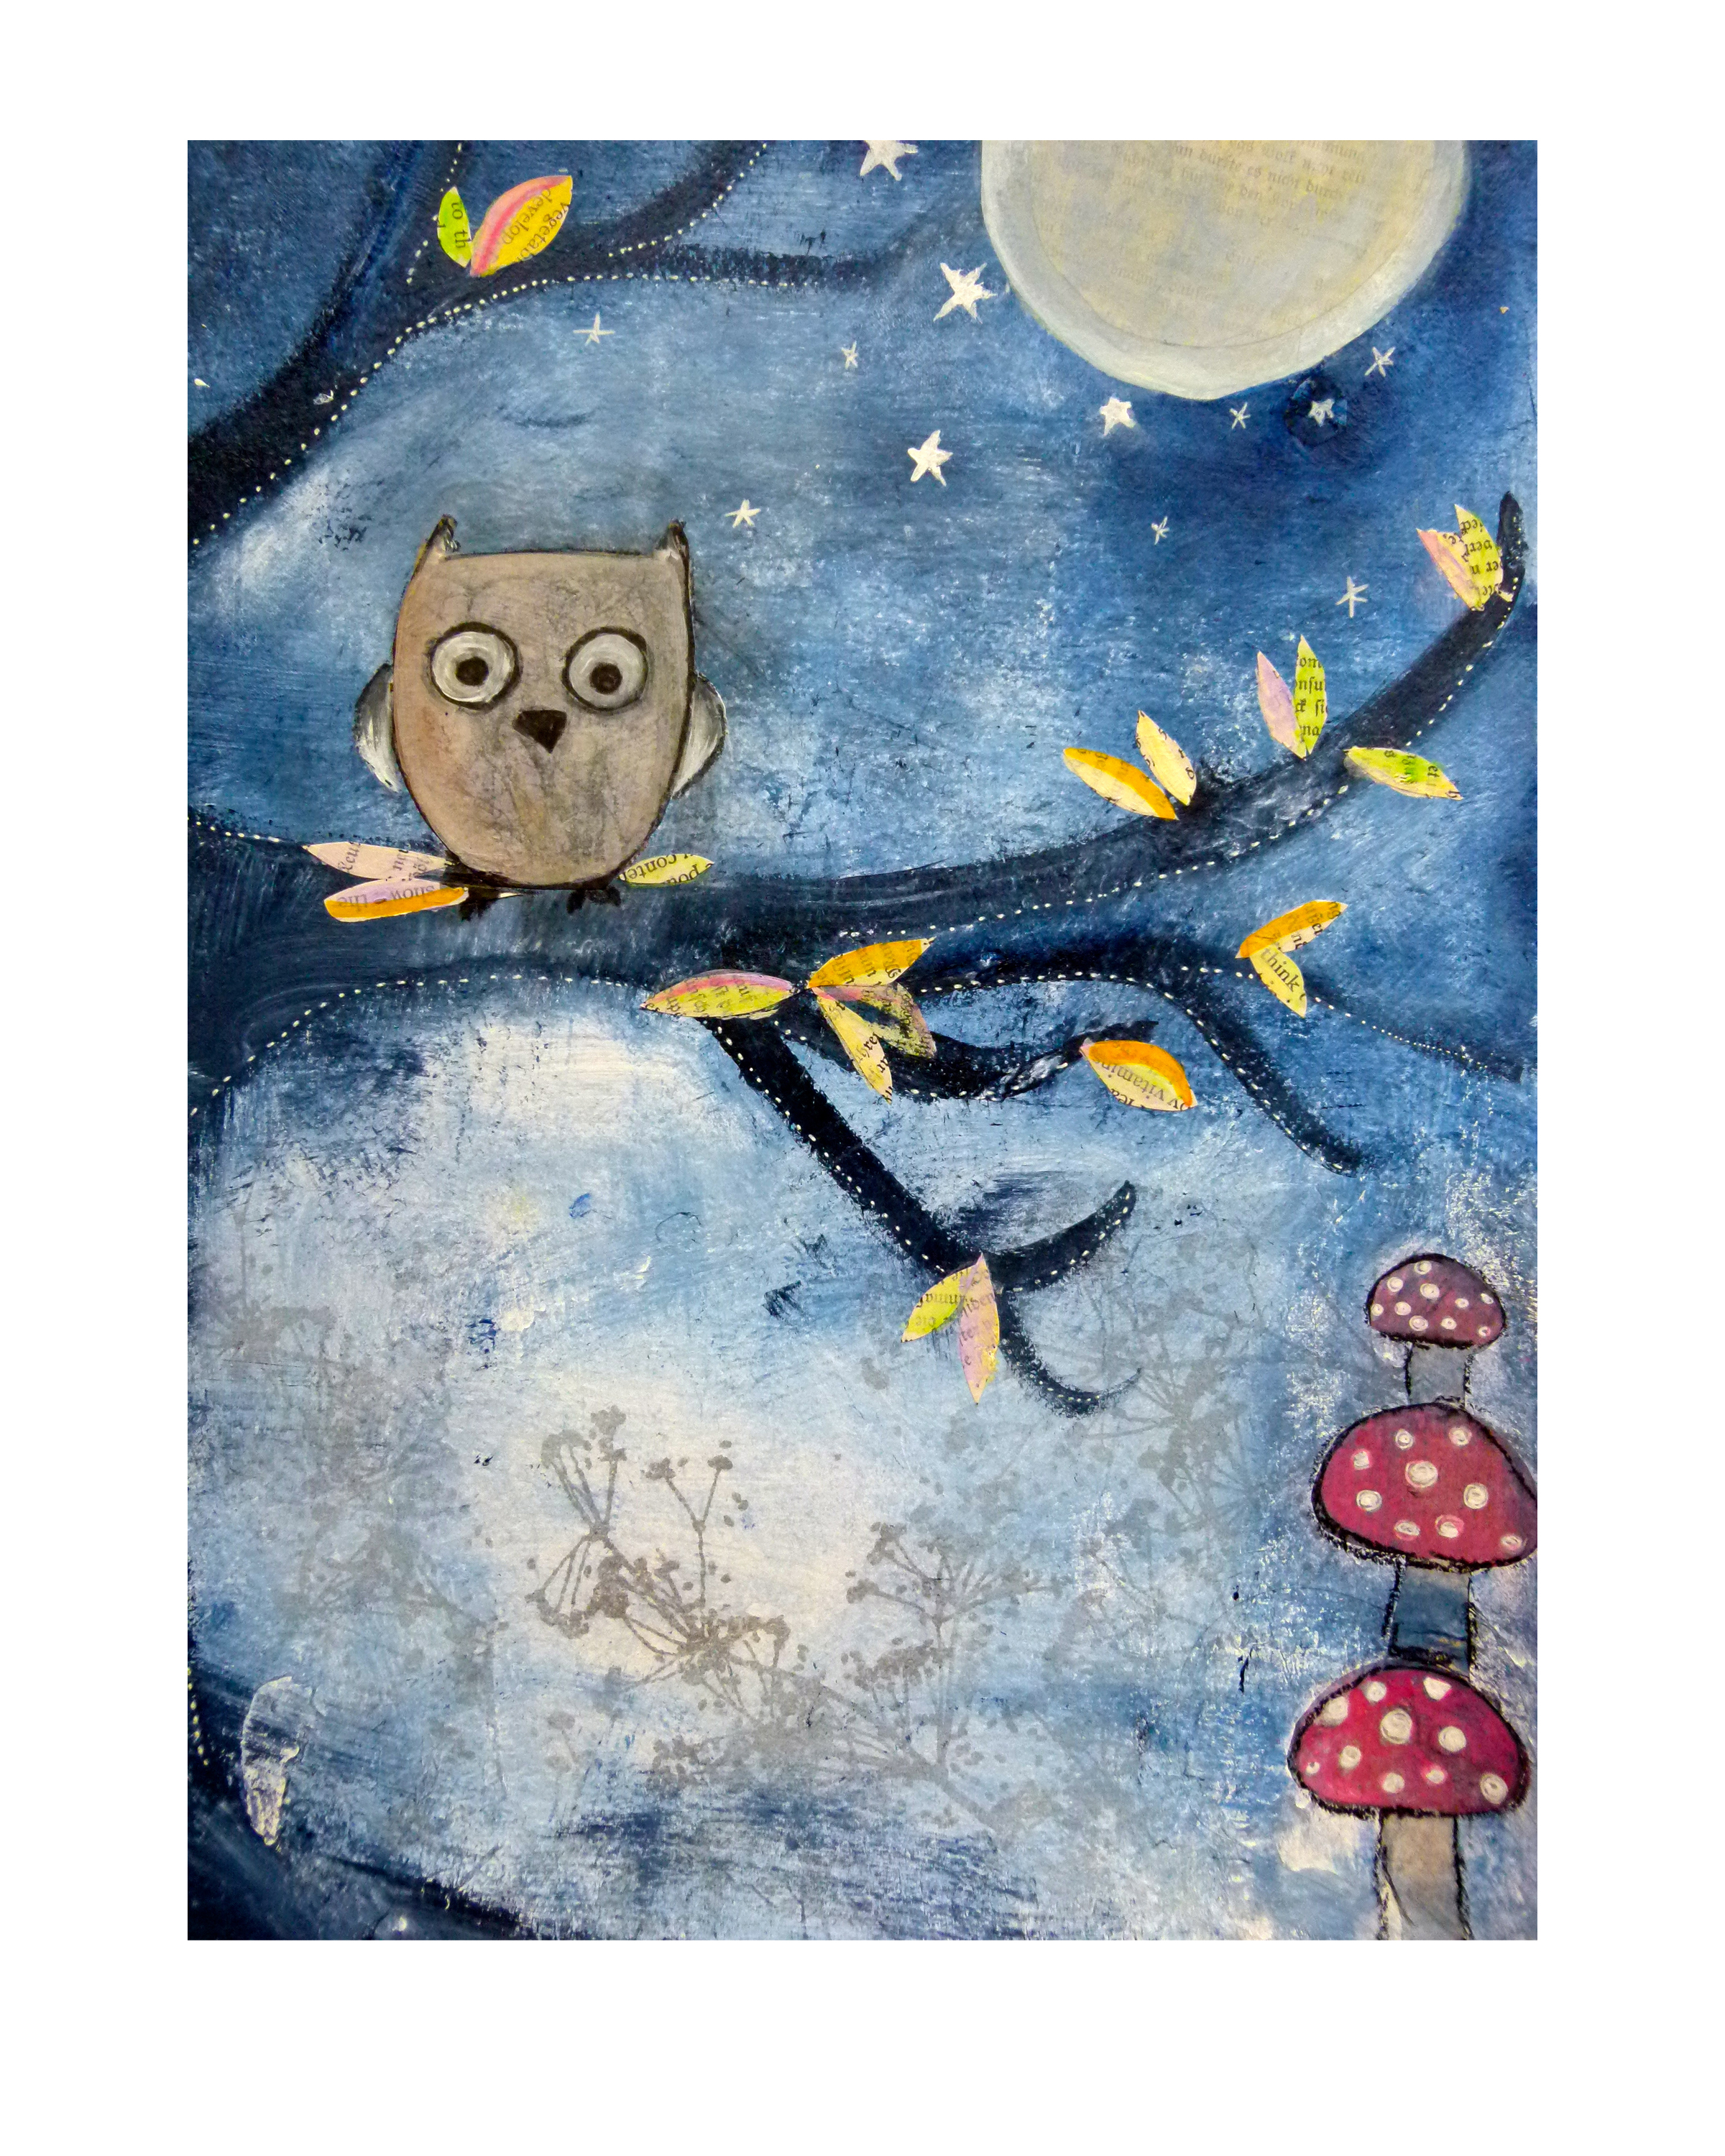 NIght Owl,  Mixed Media, 2012